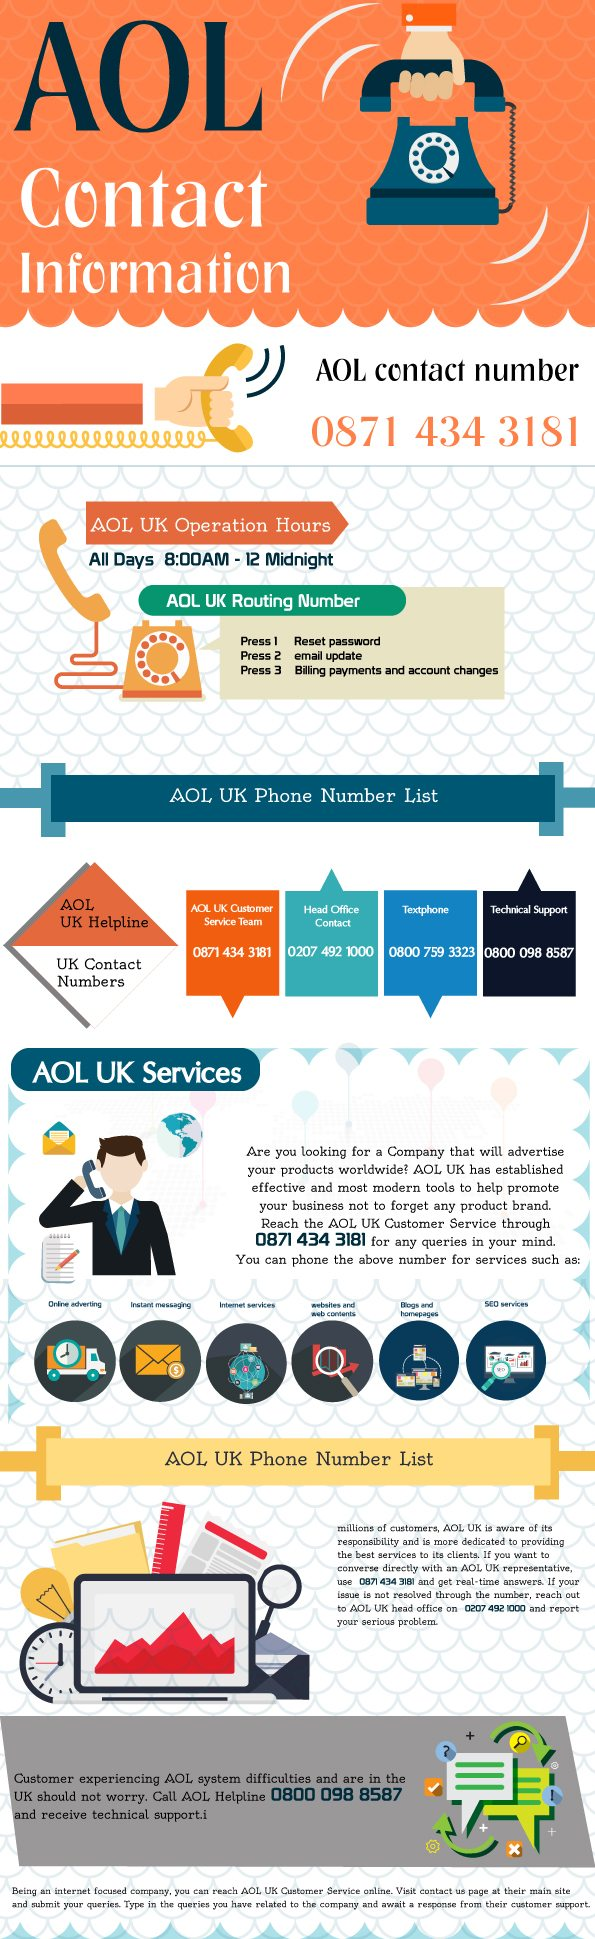 AOL Contact Numbers UK